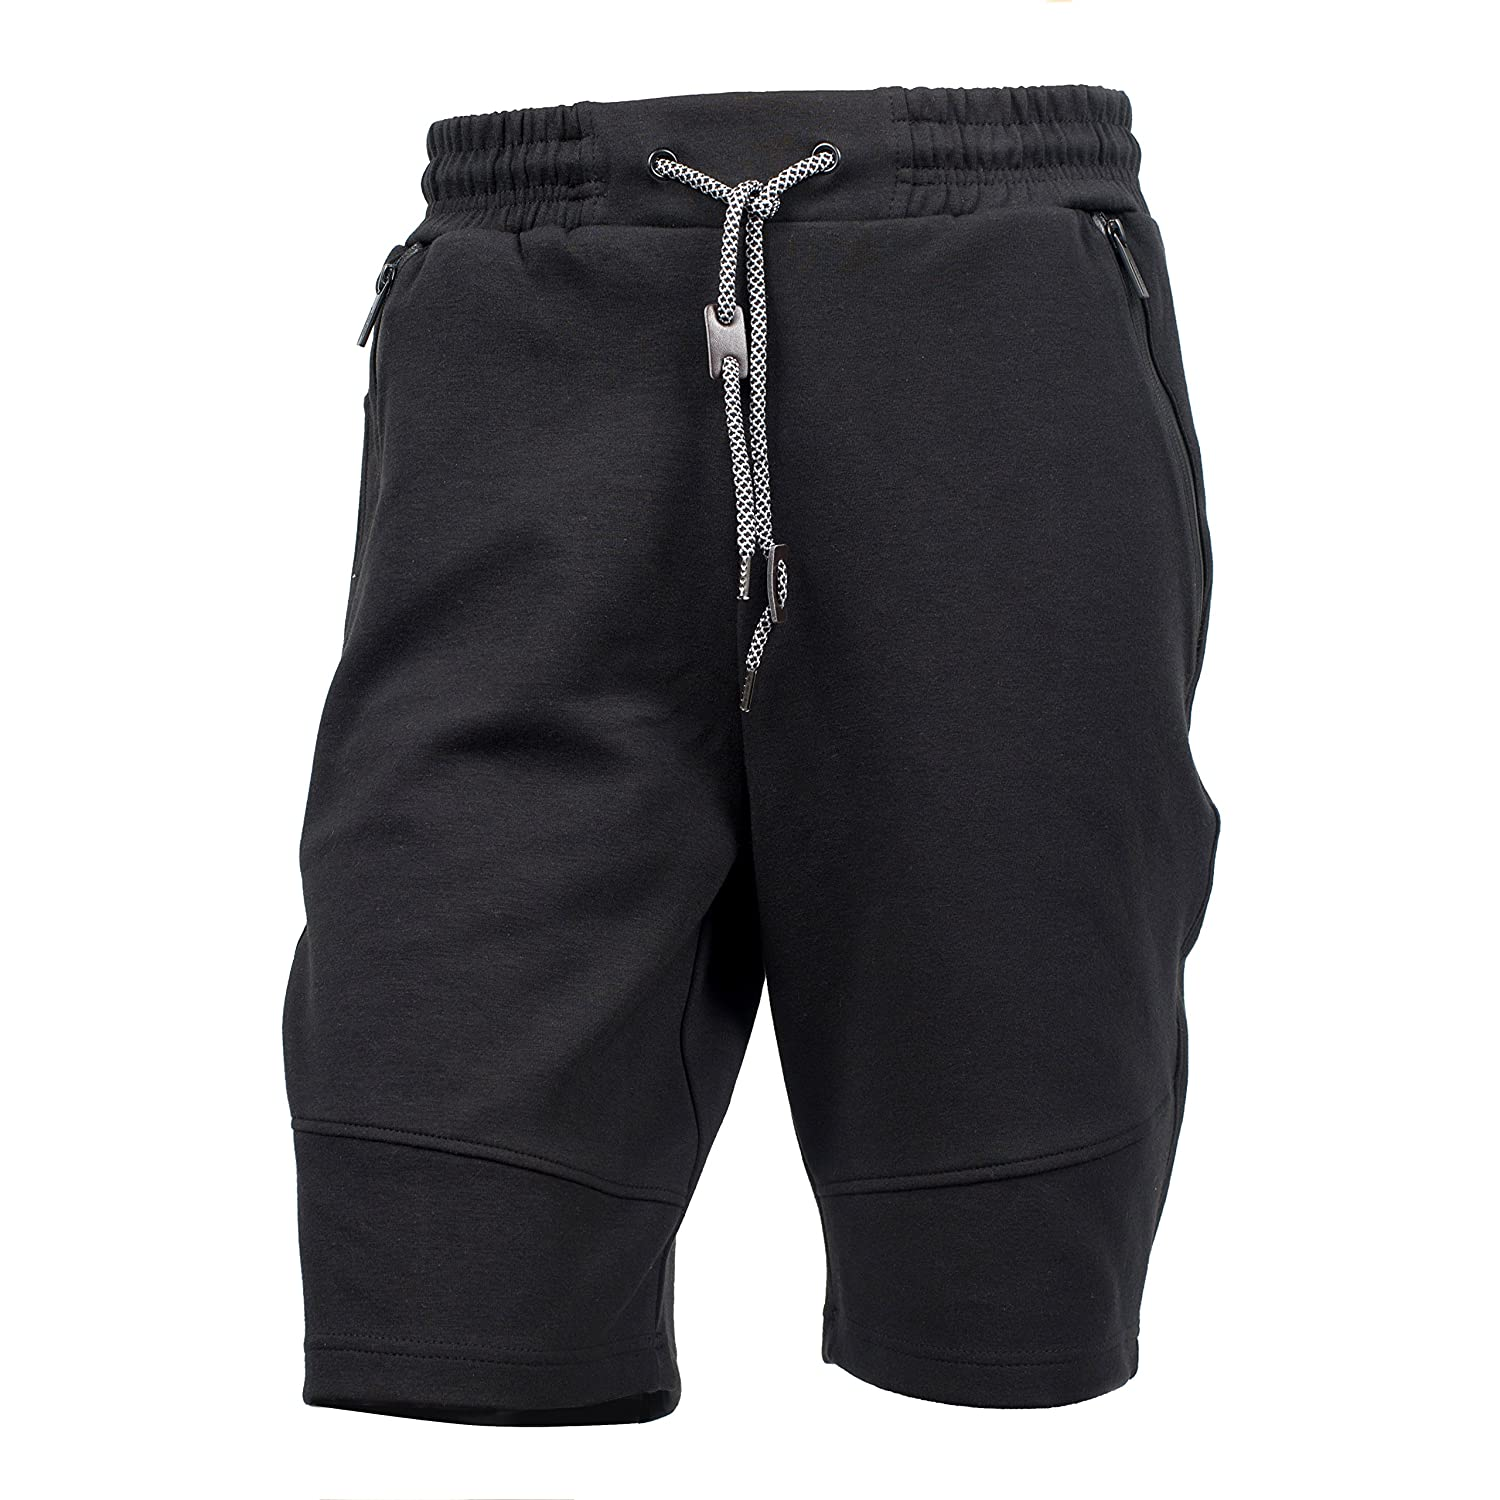 Yes Way Men' Classic Perfect Soft Cargo Short Pants-Black/Grey/Red(S up to 2XL)